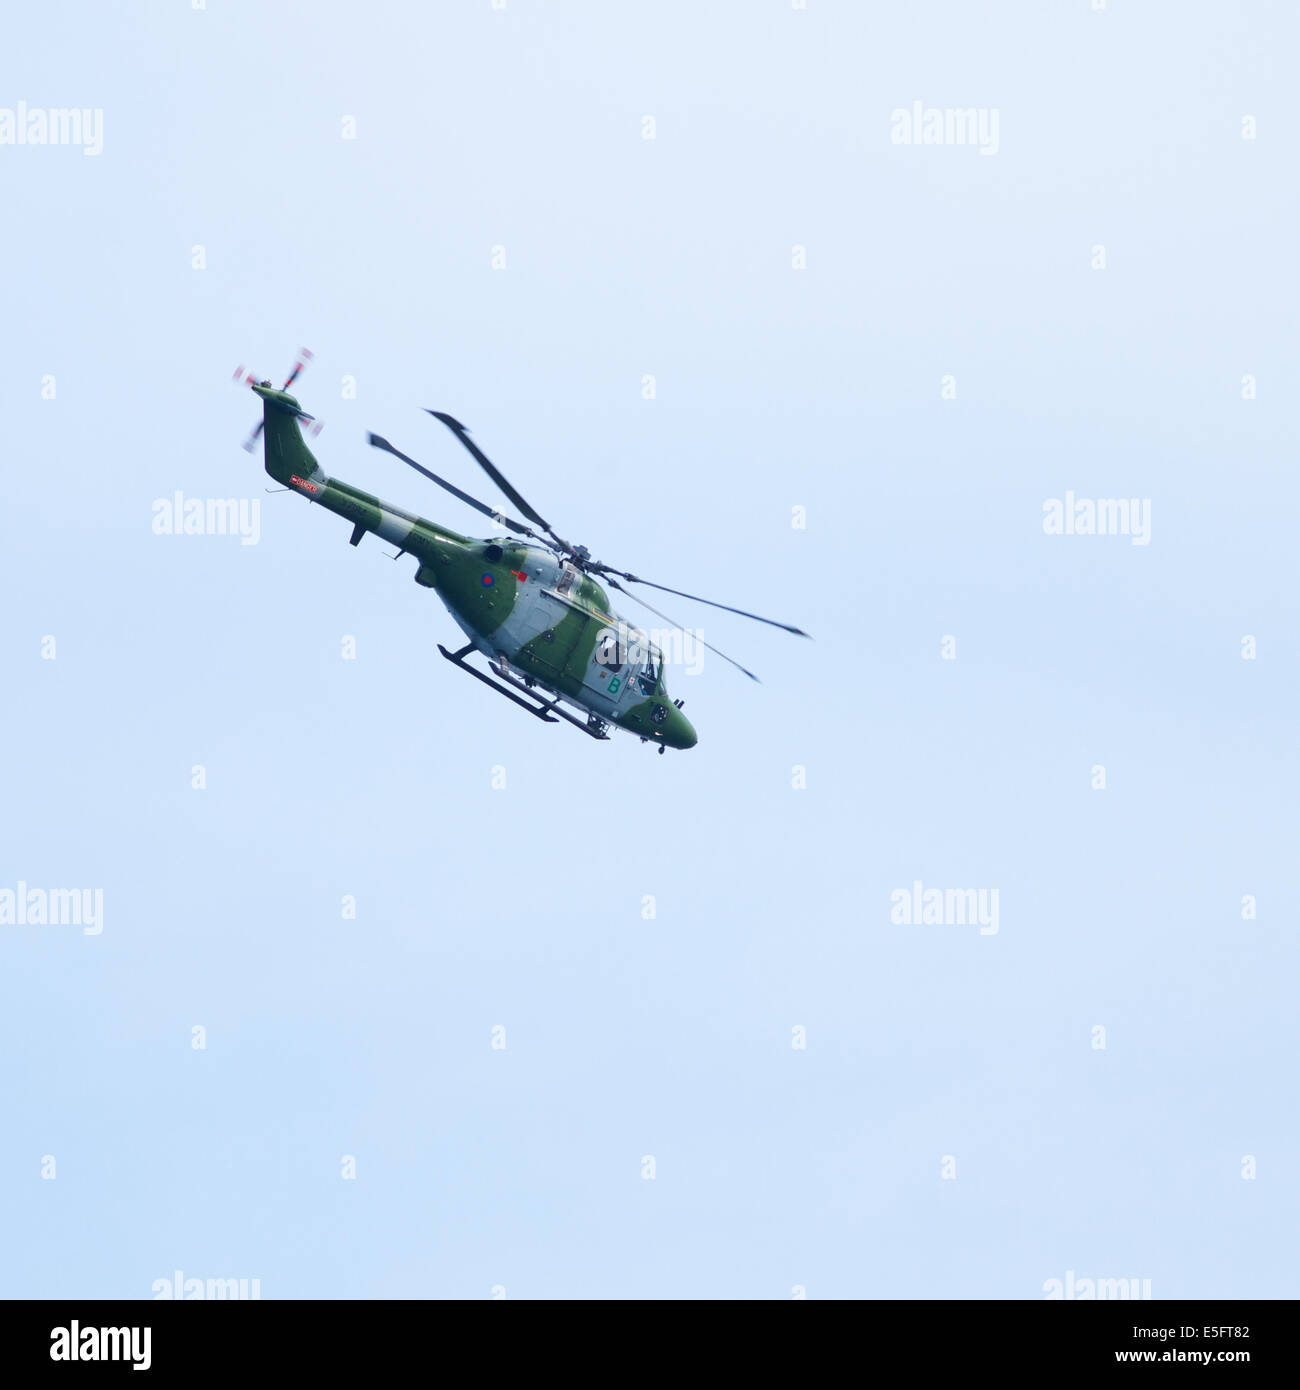 A British Army Lynx Helicopter flying at Sunderland 2014 - Stock Image